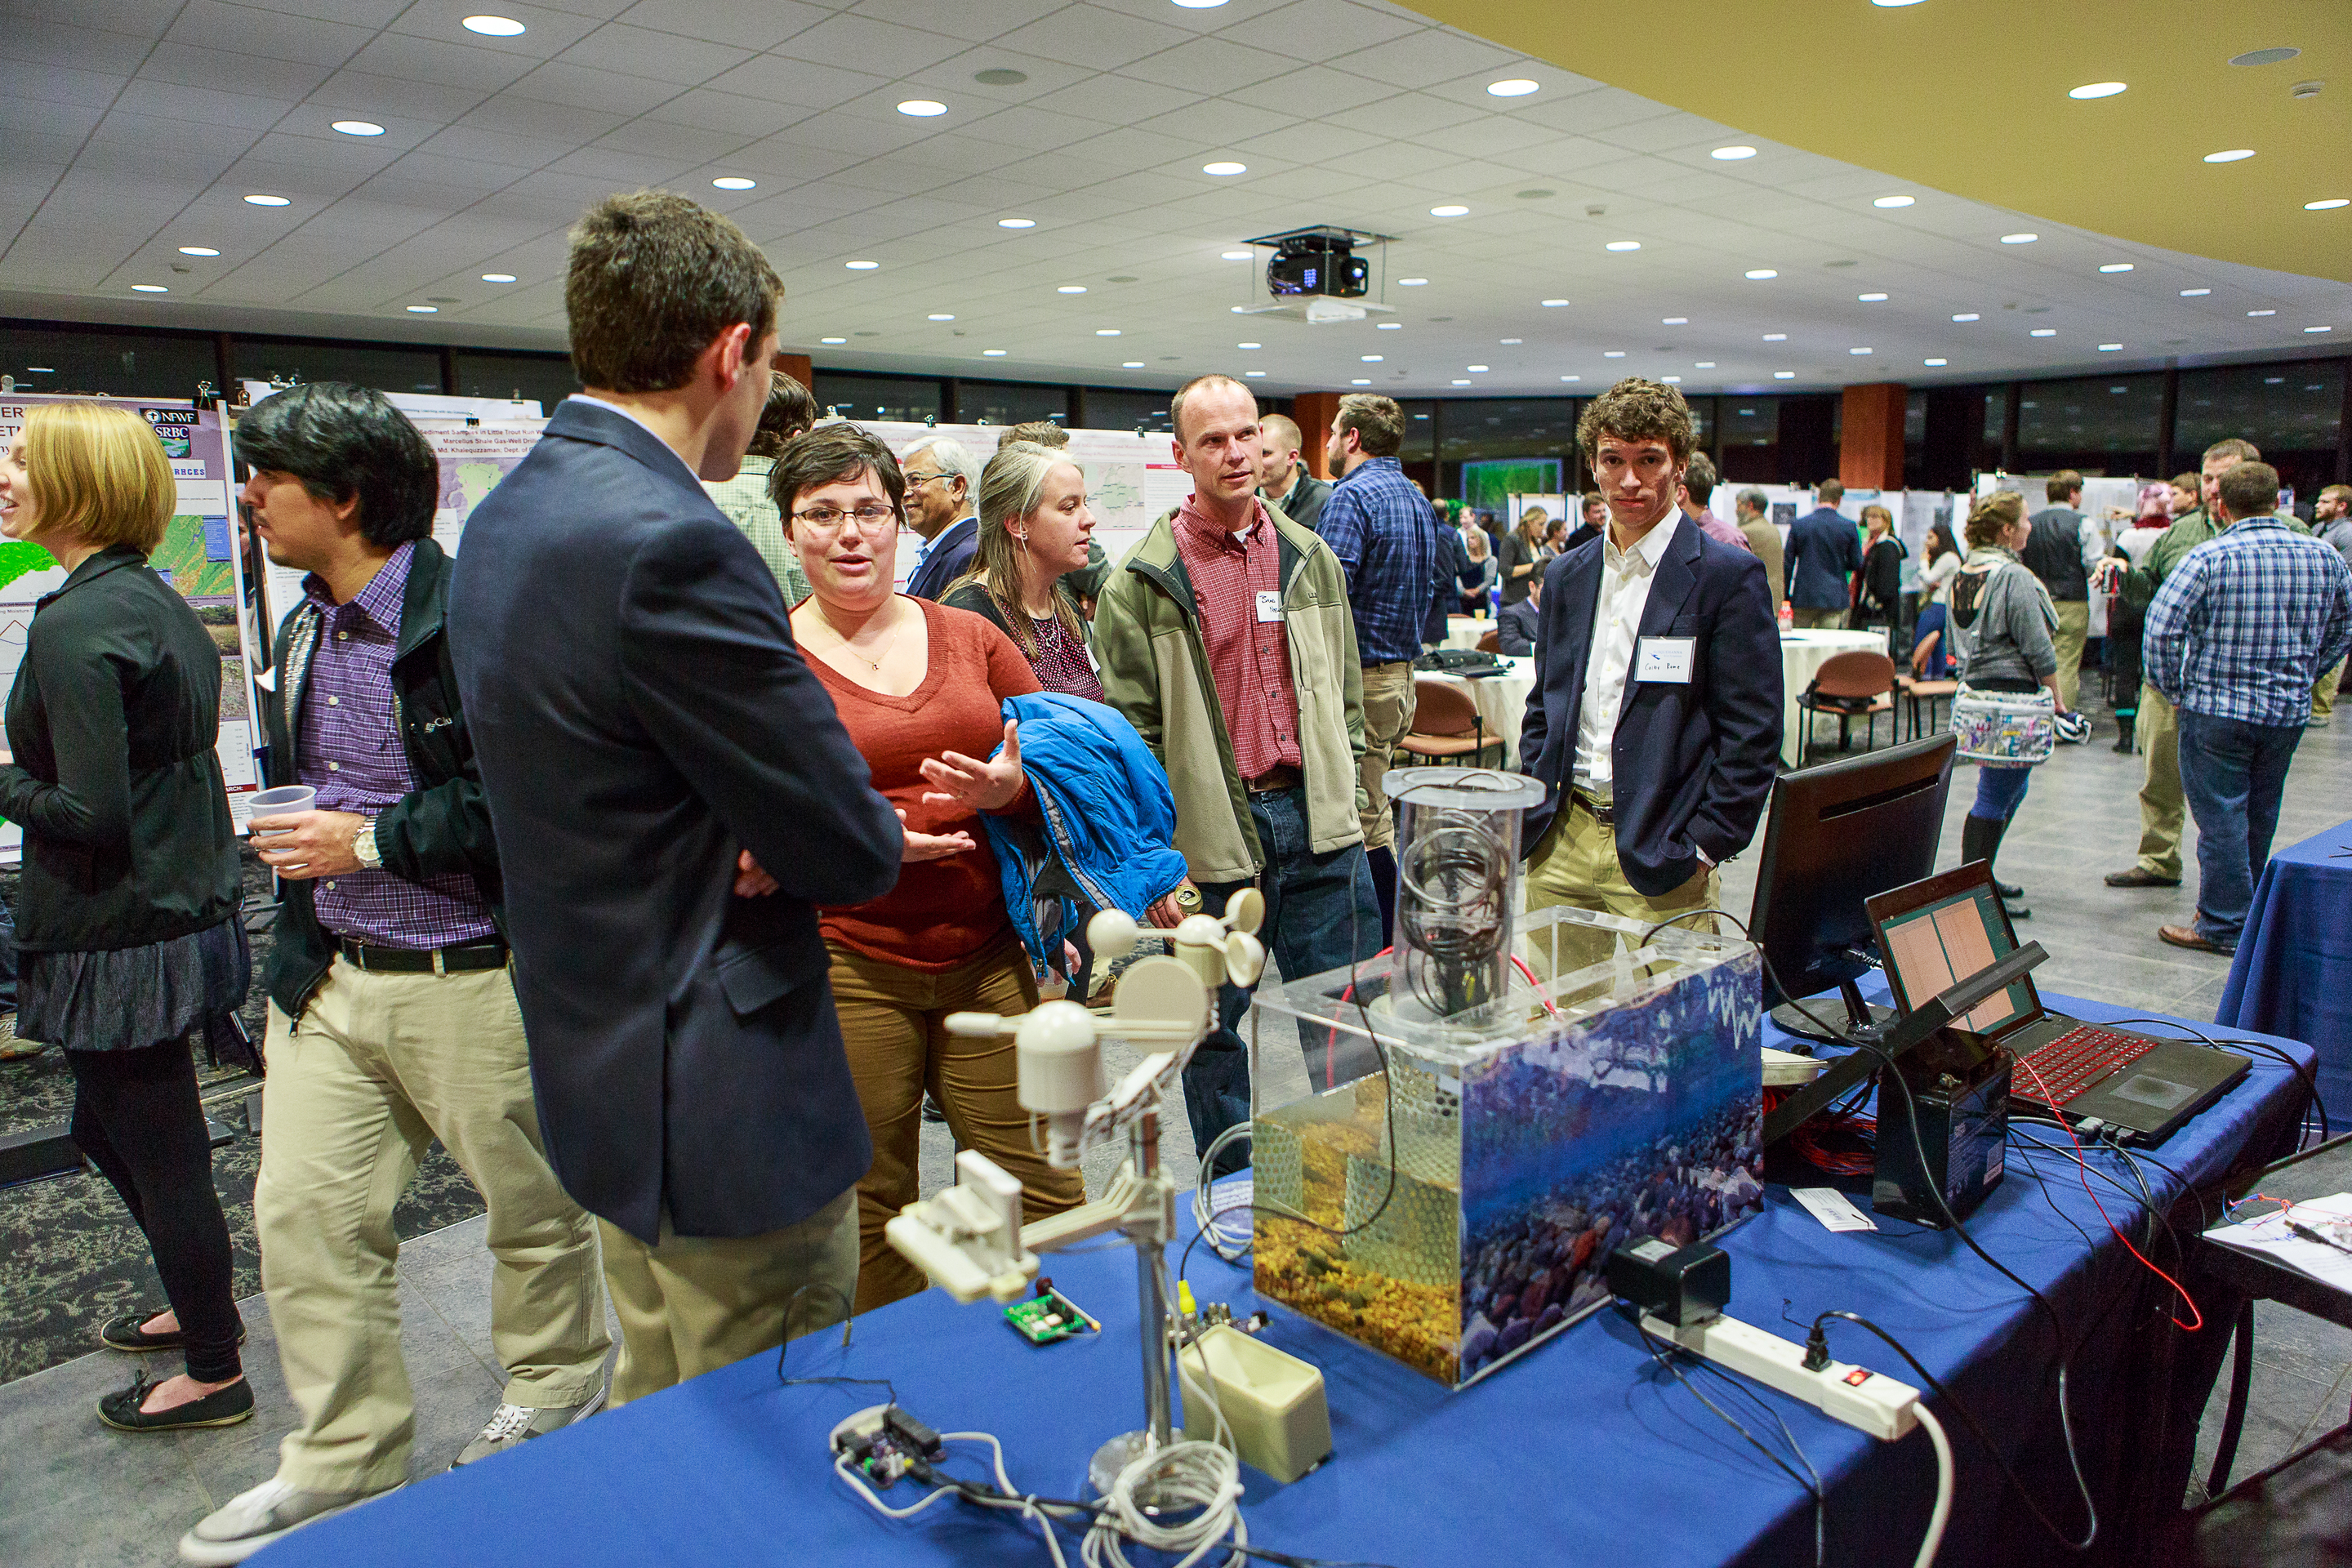 RiverSymposium_Nov2015_84-0